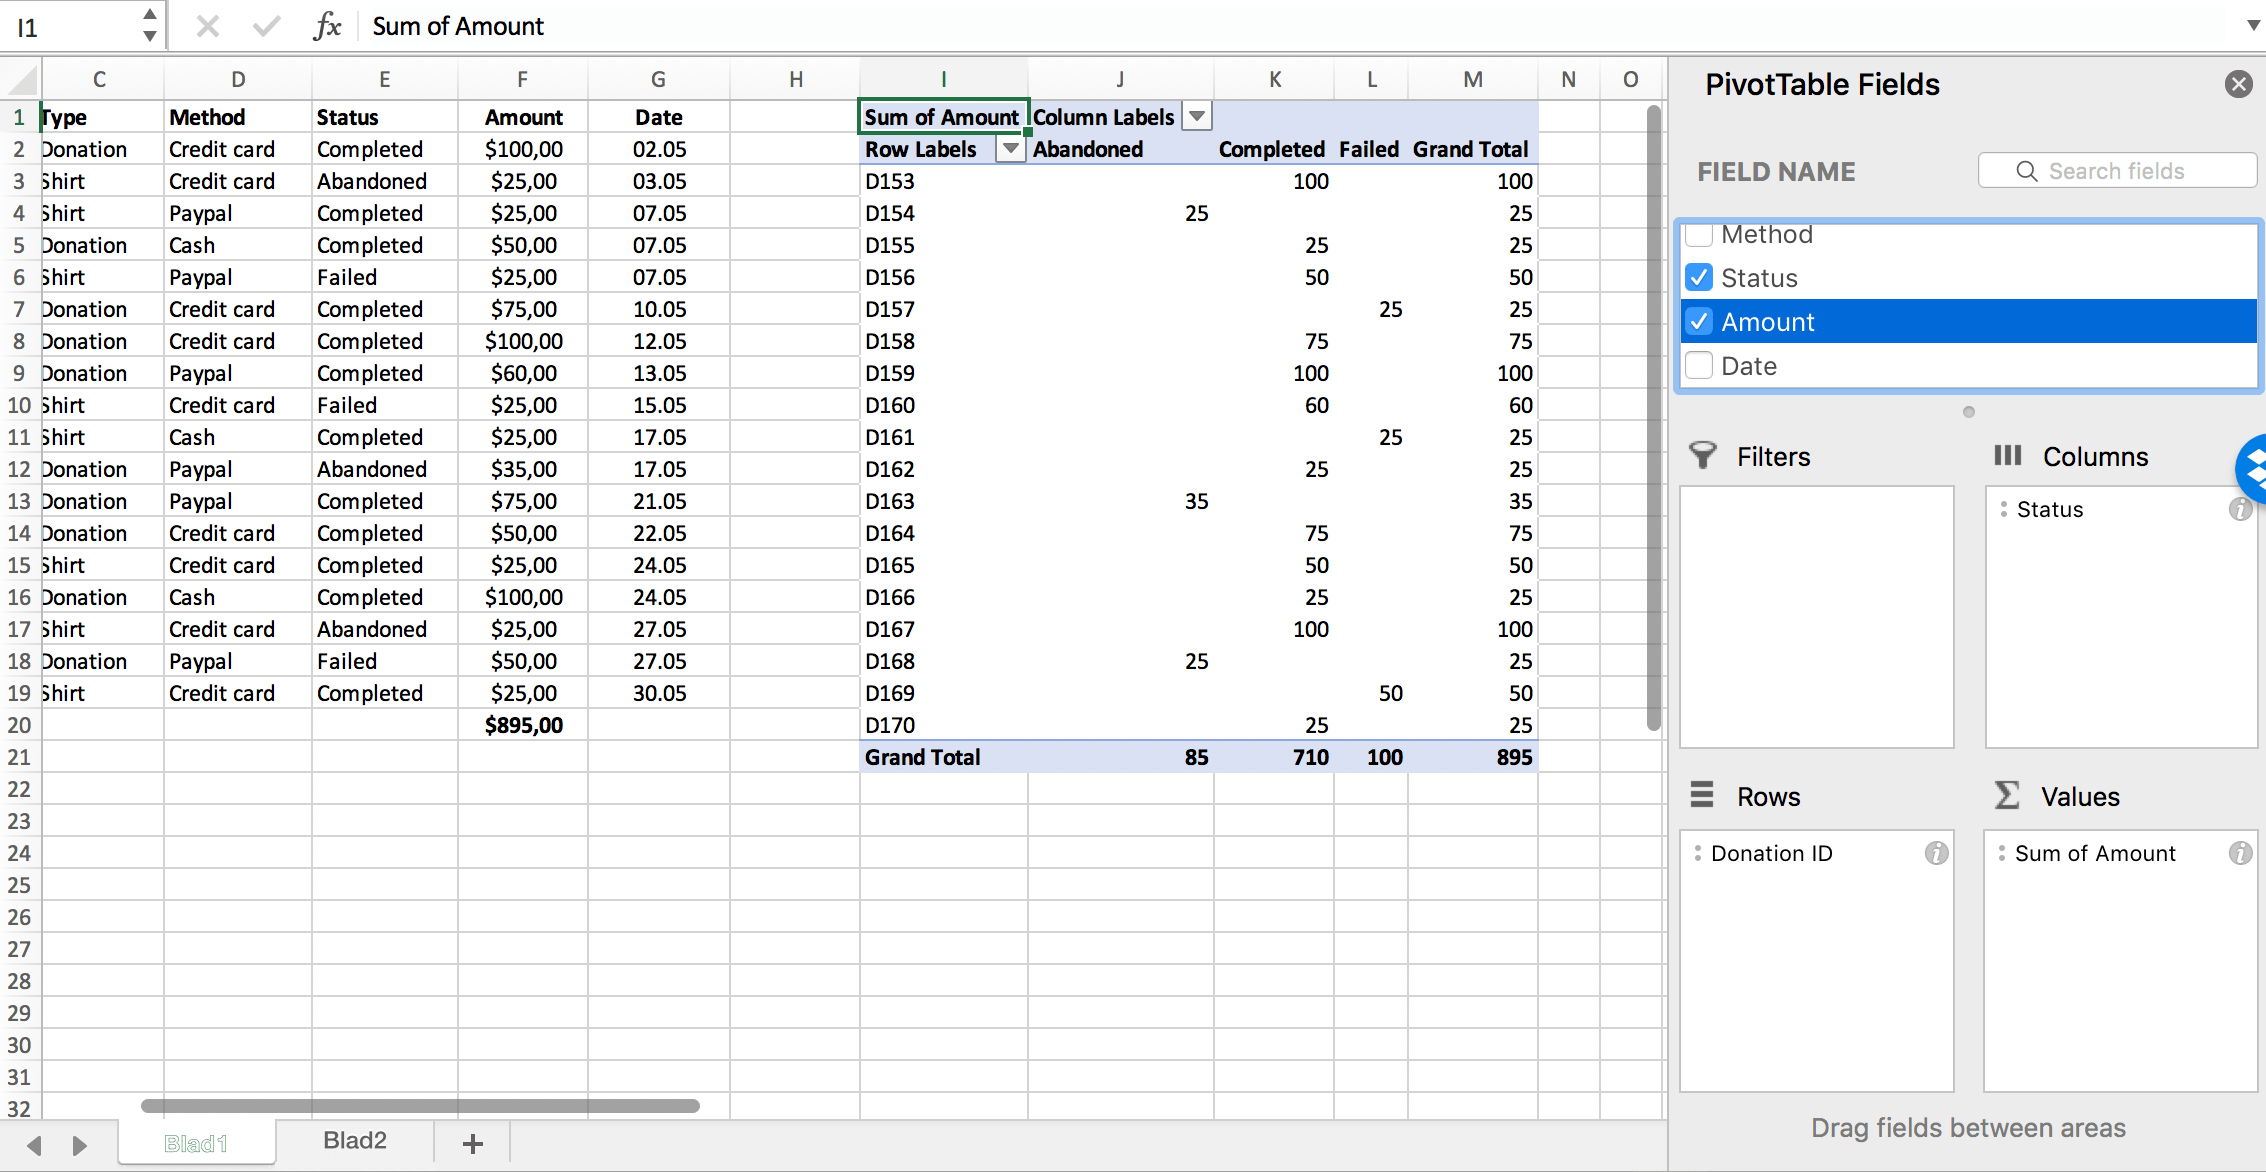 The result of all values in a Pivot Table in Excel // PerfectXL